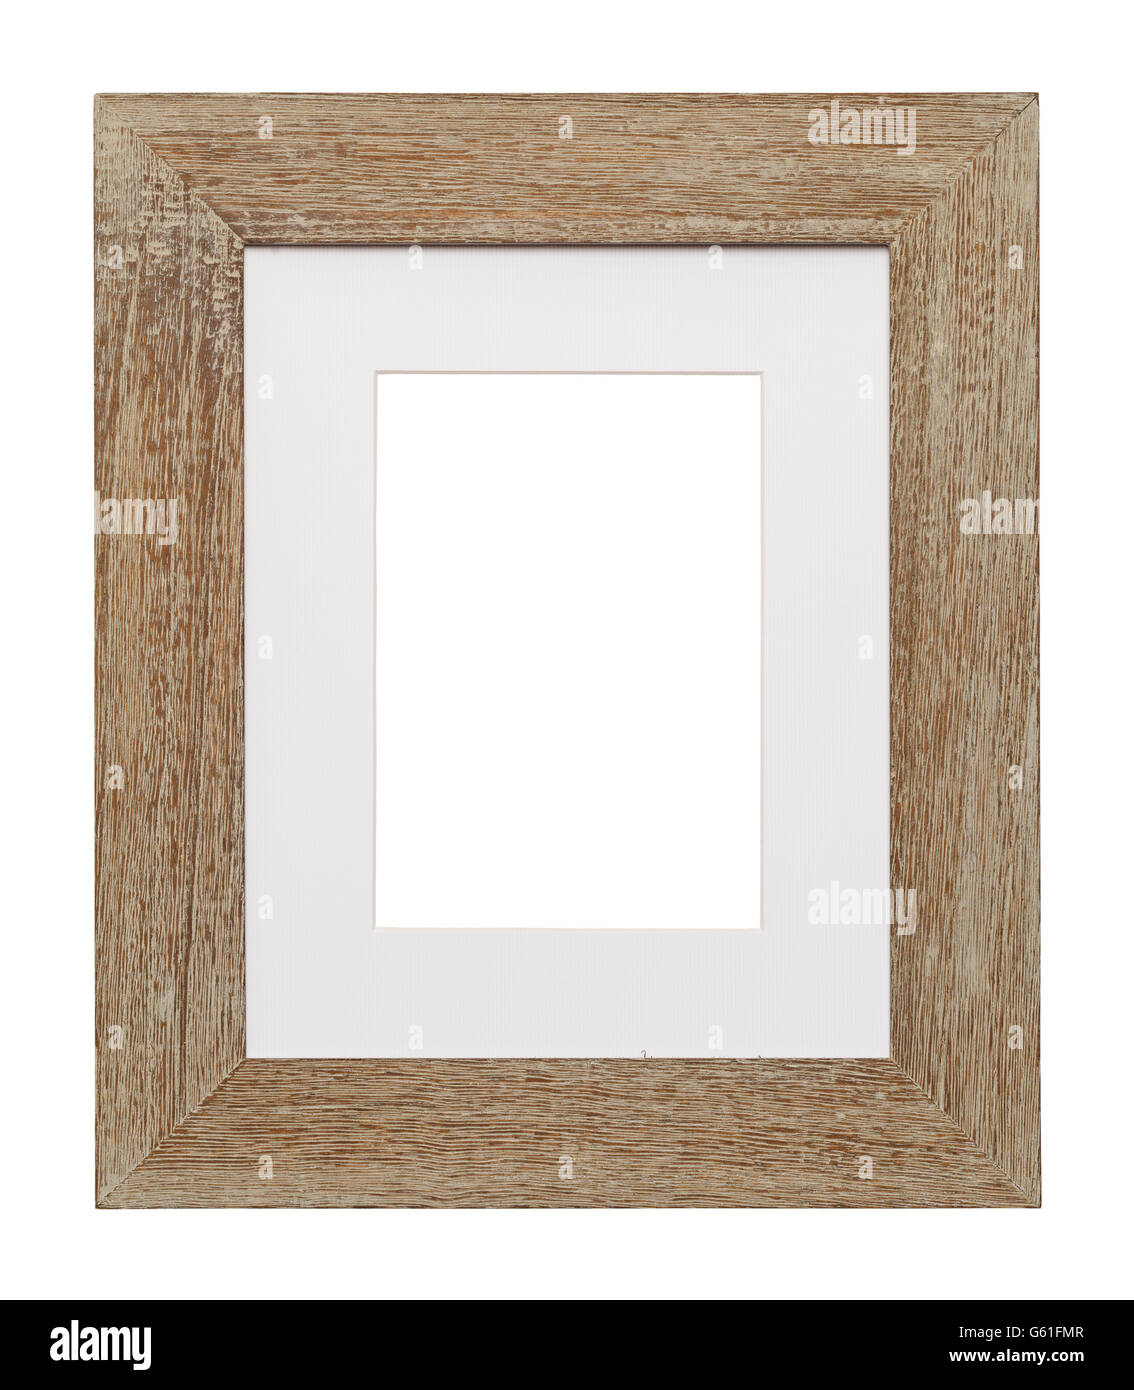 Wood Frame With White Matting And Copy Space Isolated On White Stock